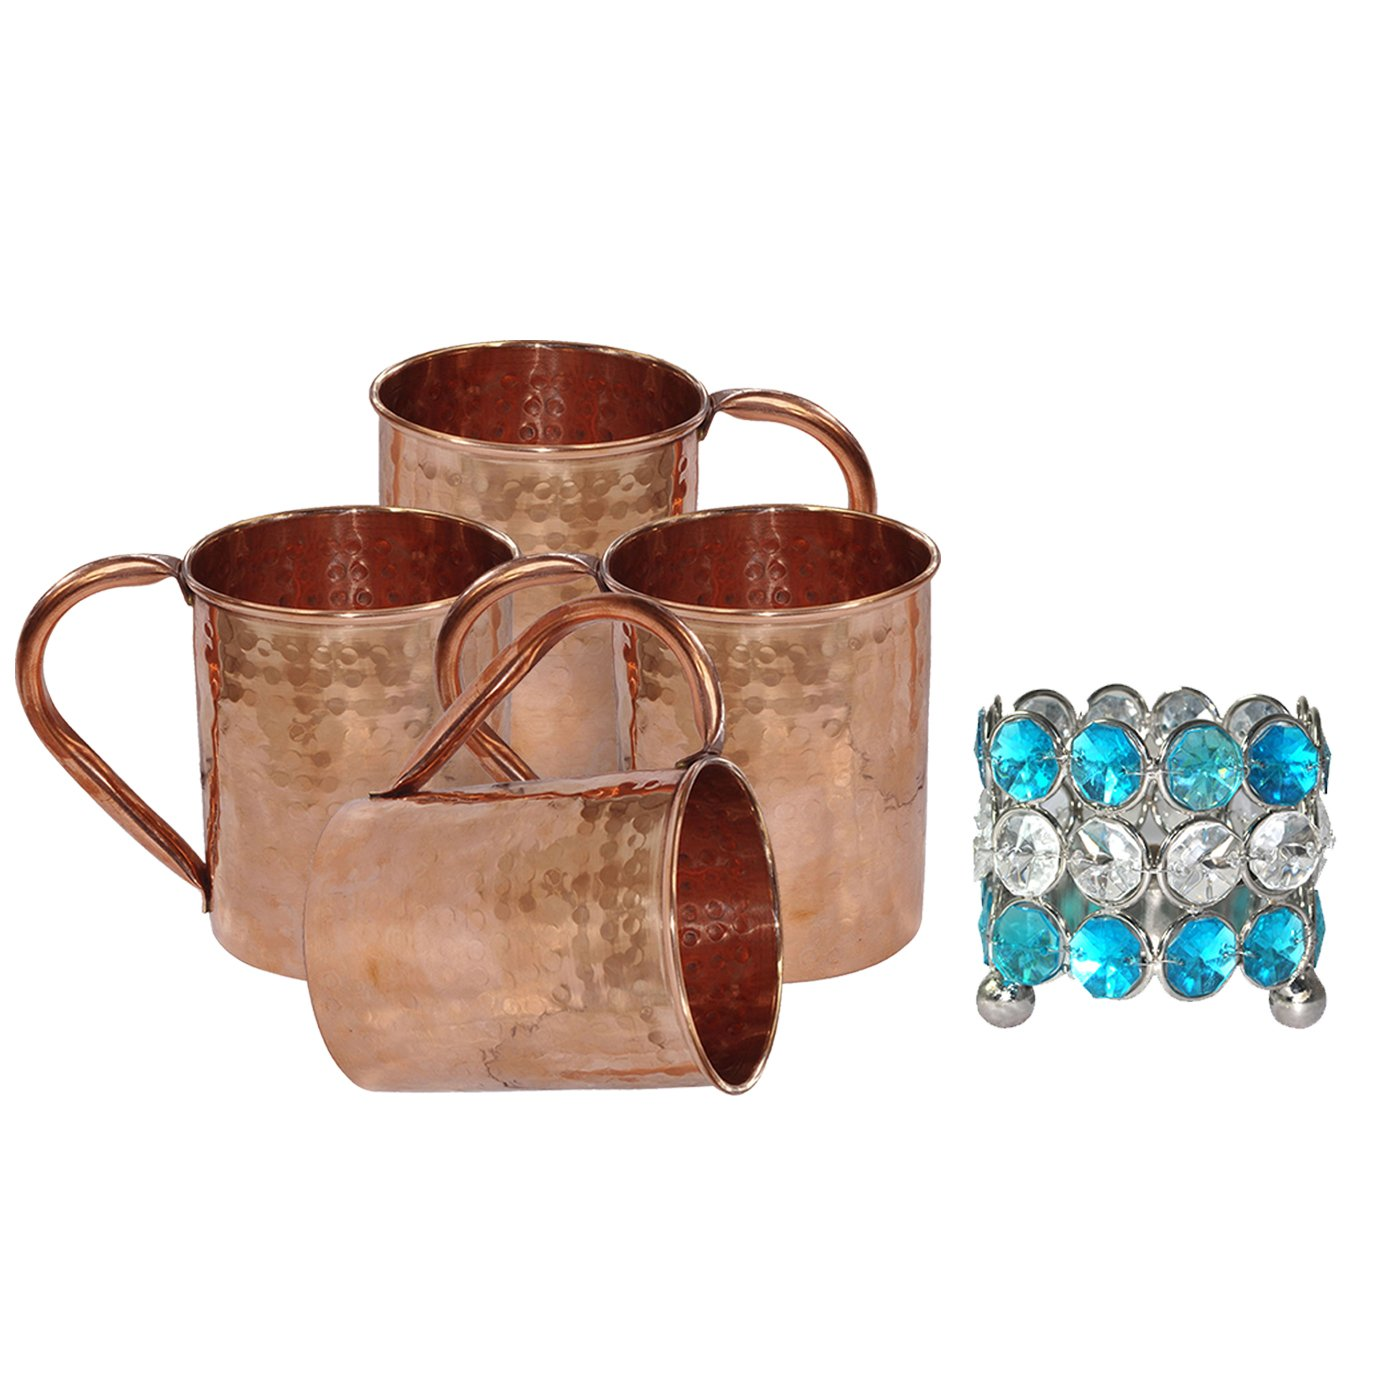 DakshCraft ® Perfect Gift for Christmas - Copper Moscow Mule Mug,Set of 4 (Capacity - 16.90 oz) & One Candle Stand